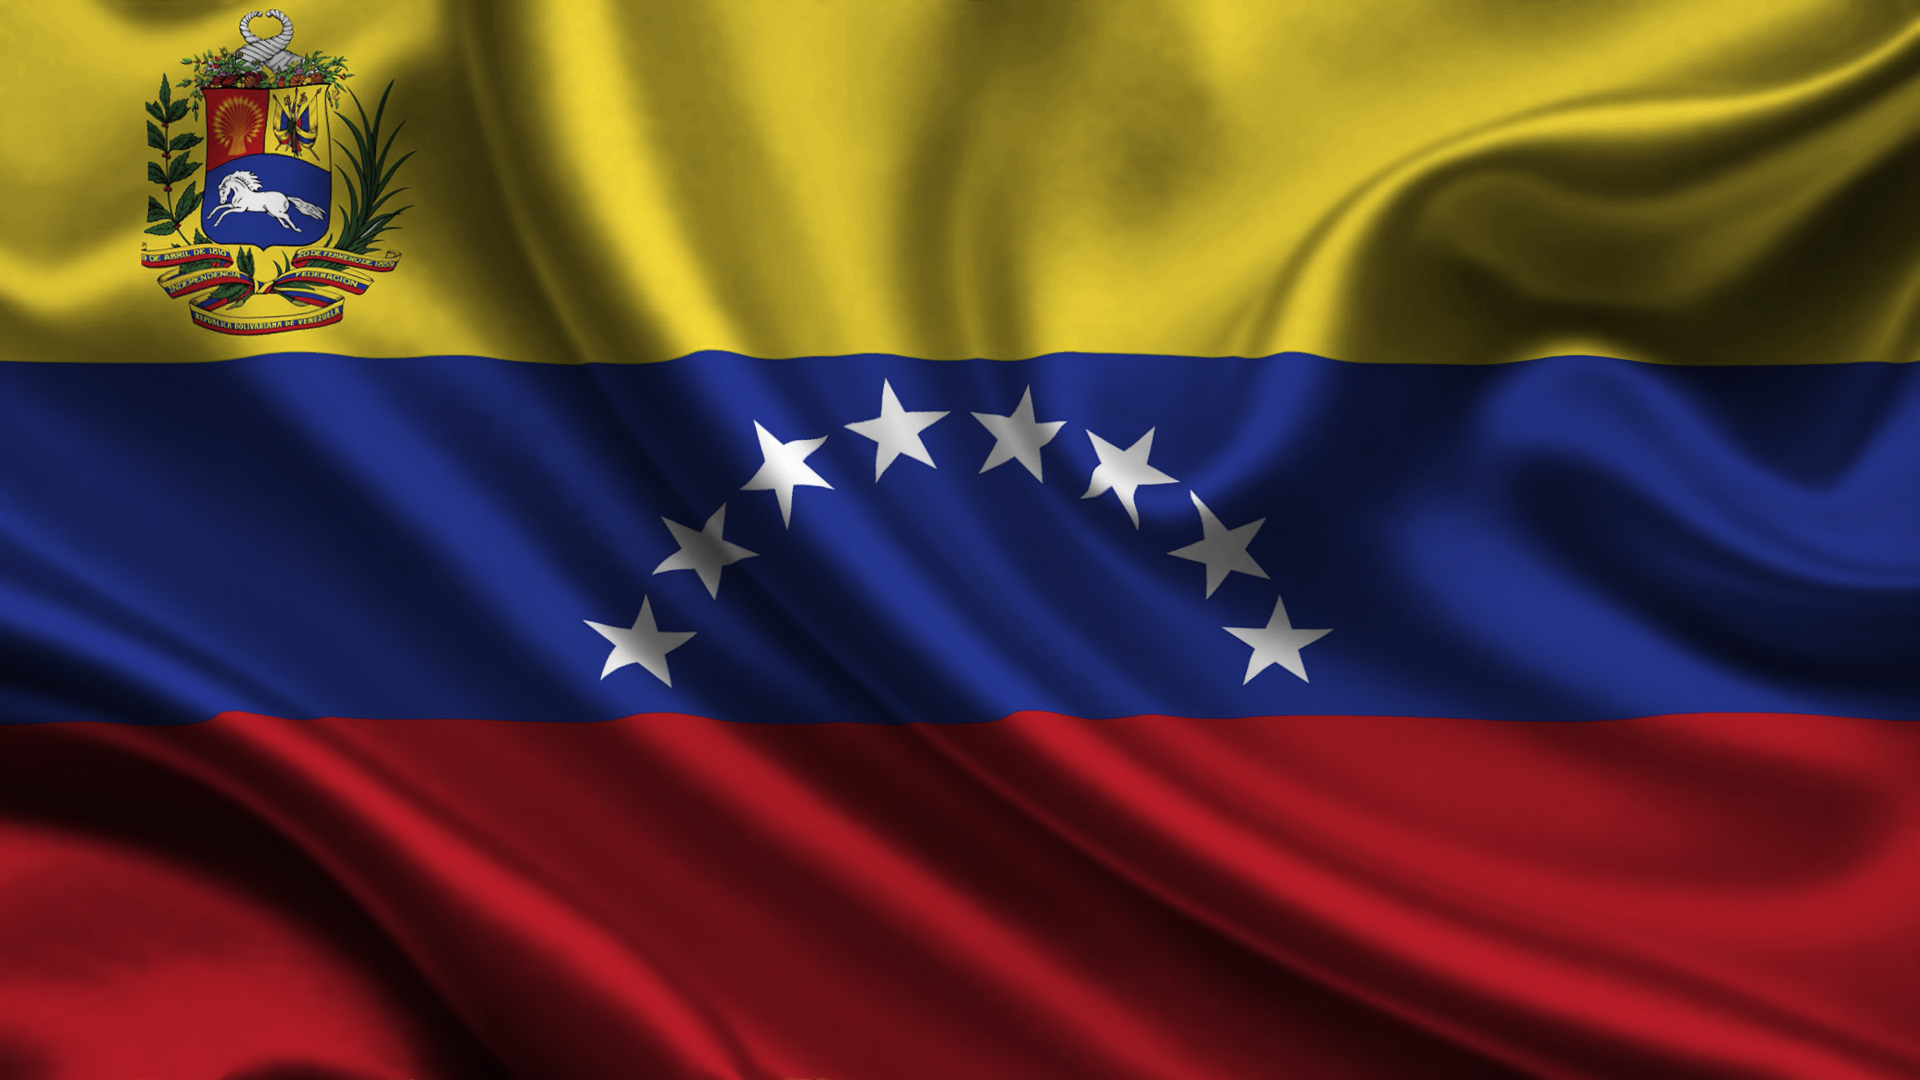 Venezuela Flag and Description